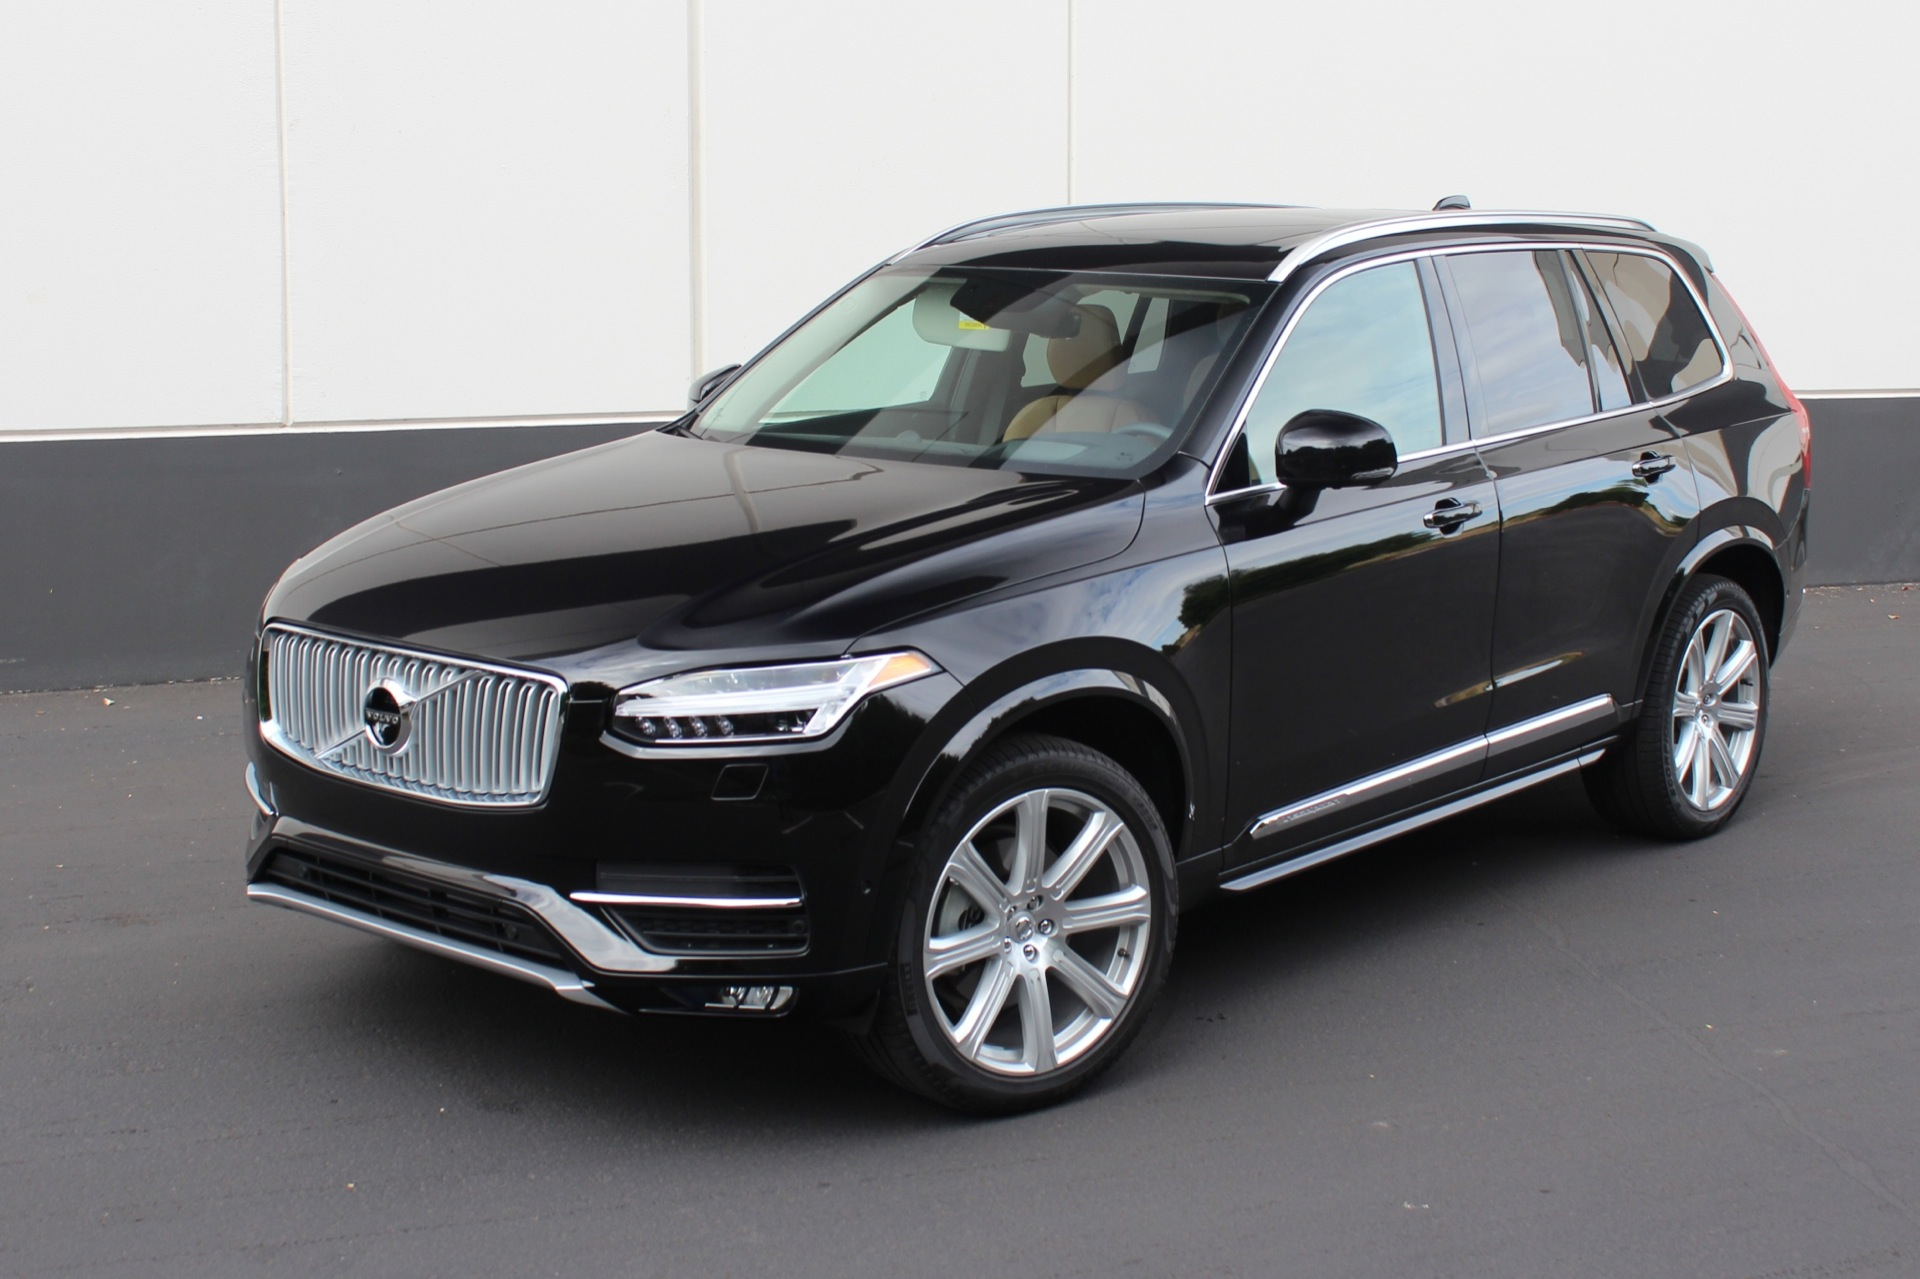 Jeep Dealership Los Angeles >> Volvo XC90 Starting Price Down To $44,945 With New T5 Model